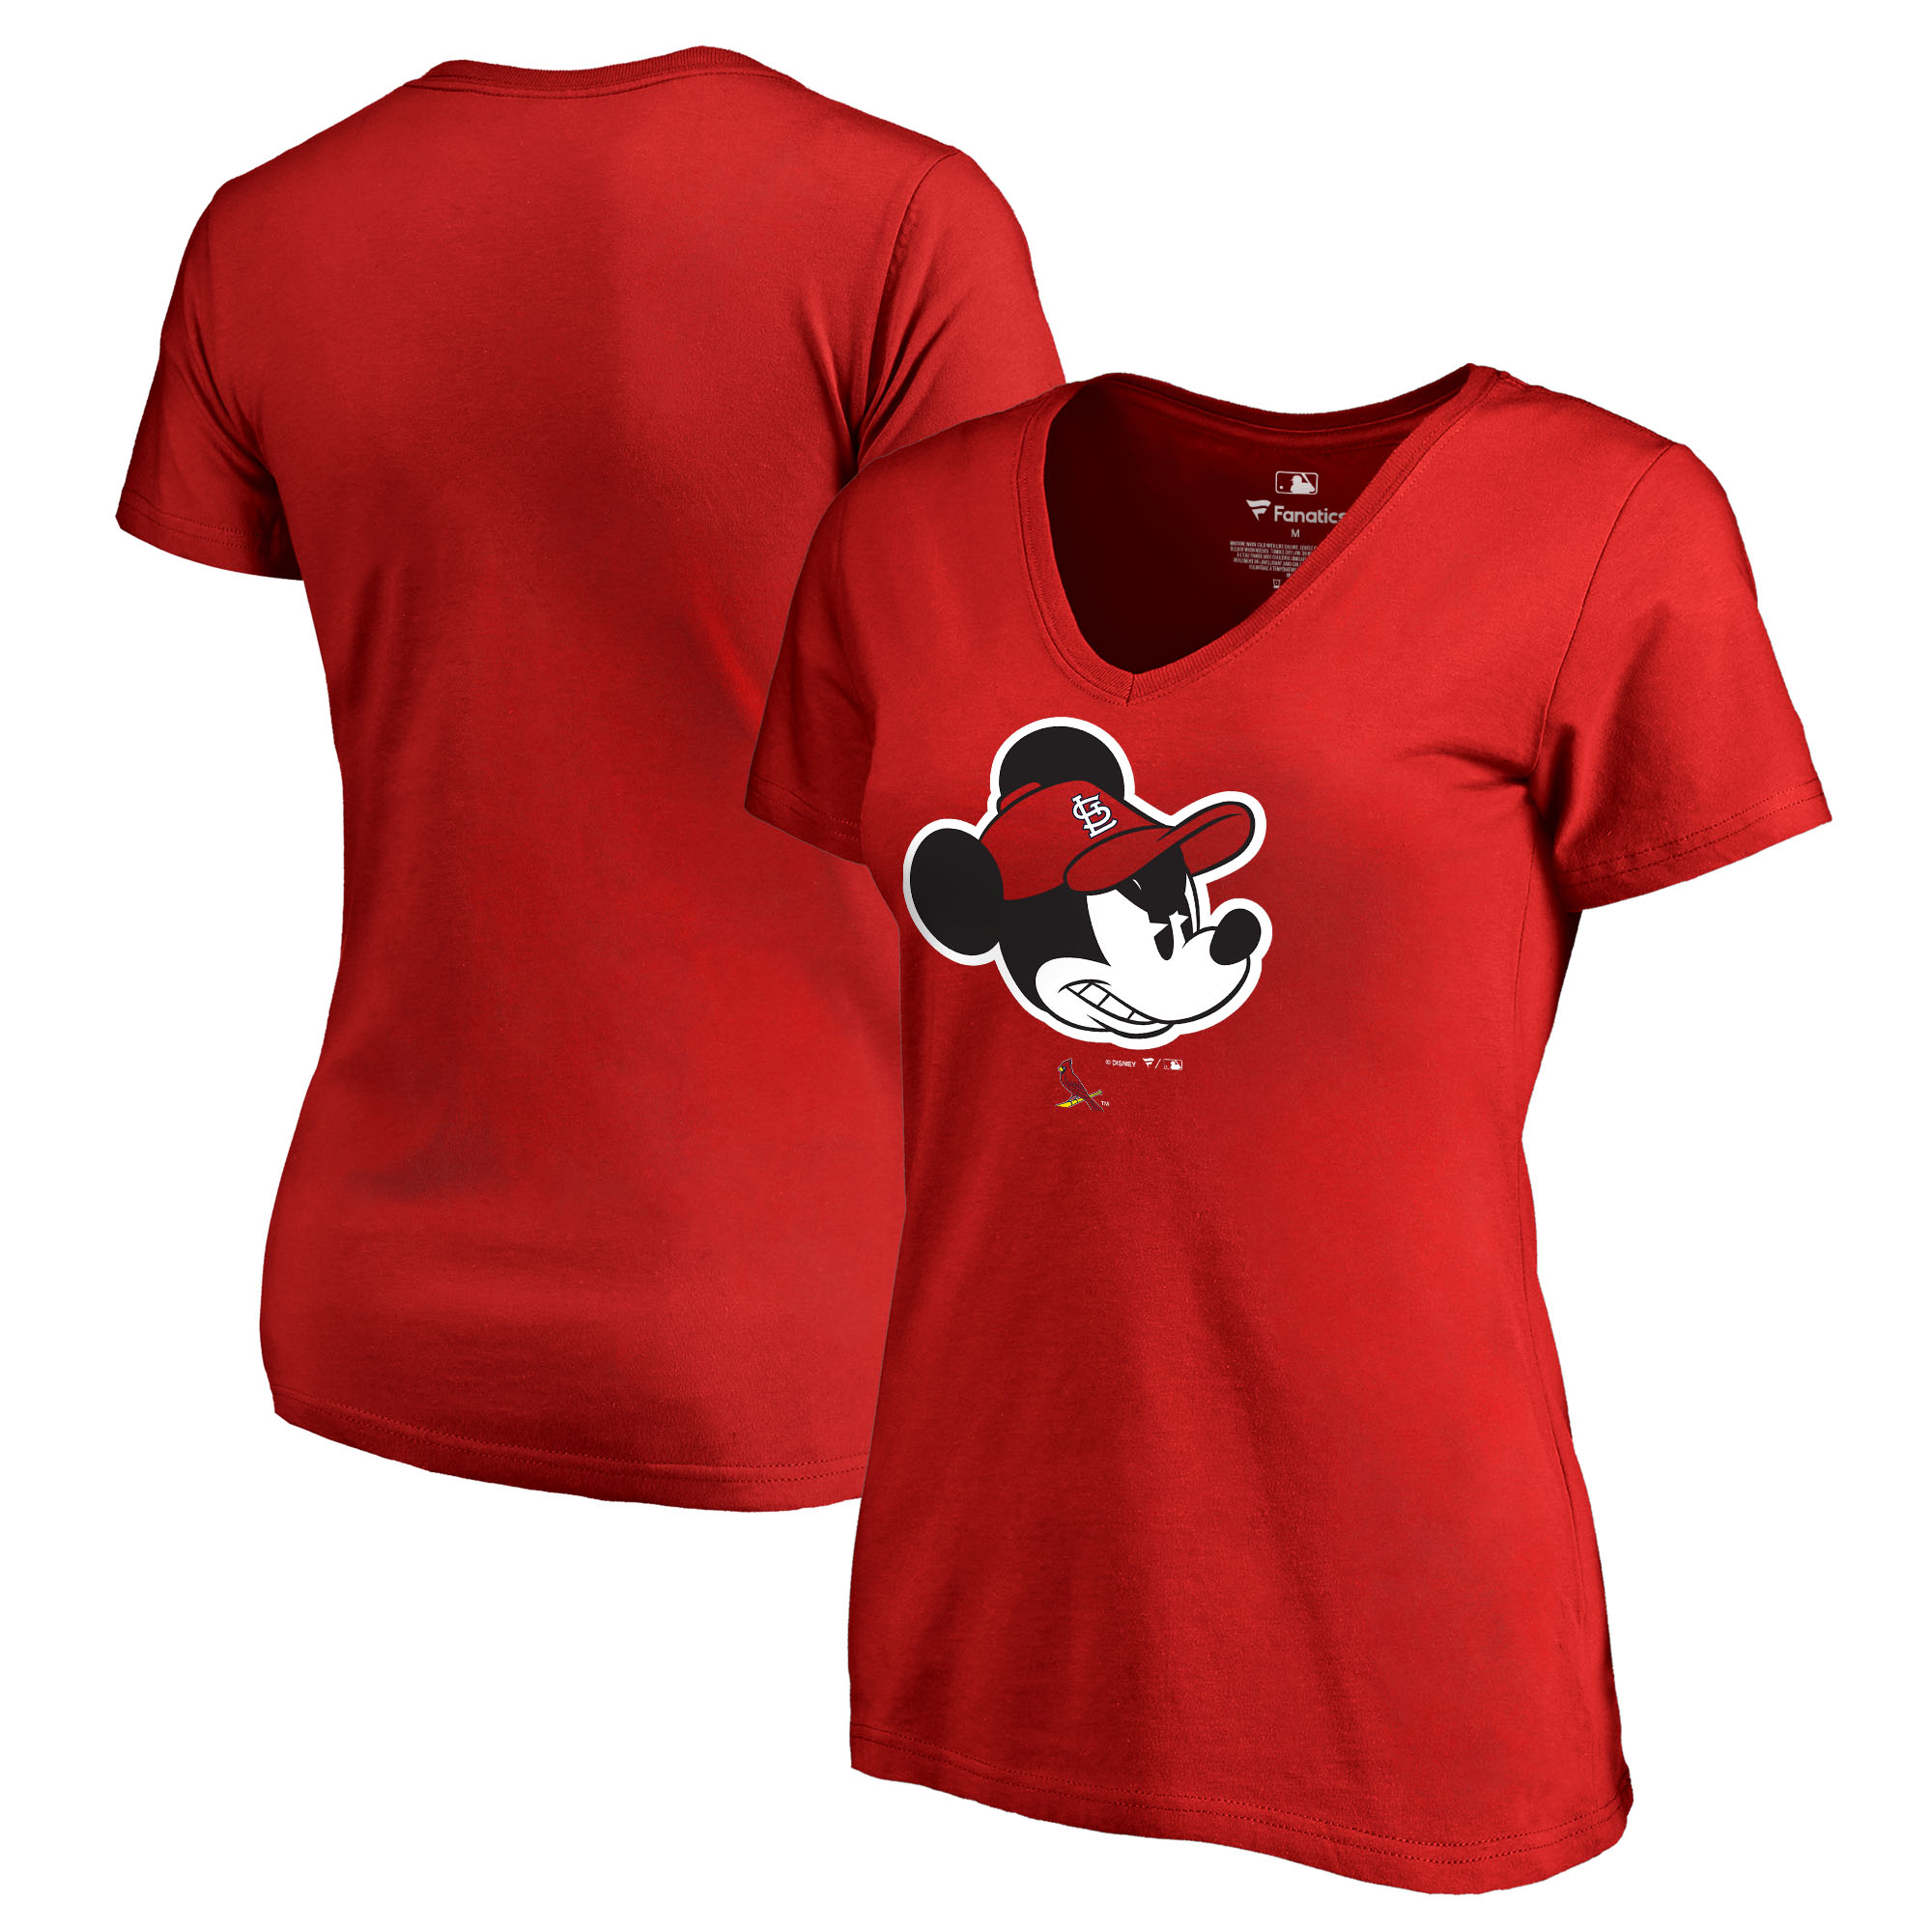 St. Louis Cardinals Fanatics Branded Women's Disney Game Face V-Neck T-Shirt - Red